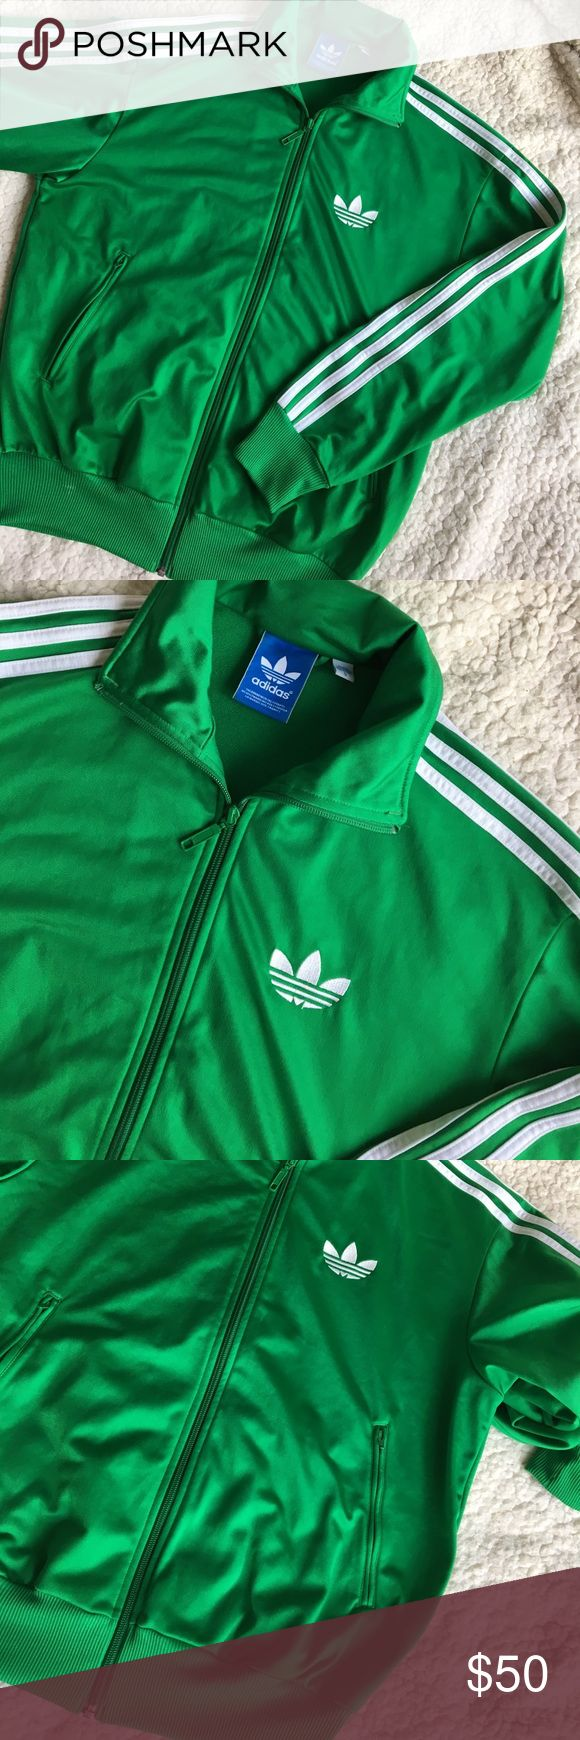 Adidas Originals Firebird Track Jacket Gently worn about a handful of times. This is a Men's size Small can also fit a women's medium/large. adidas Jackets & Coats